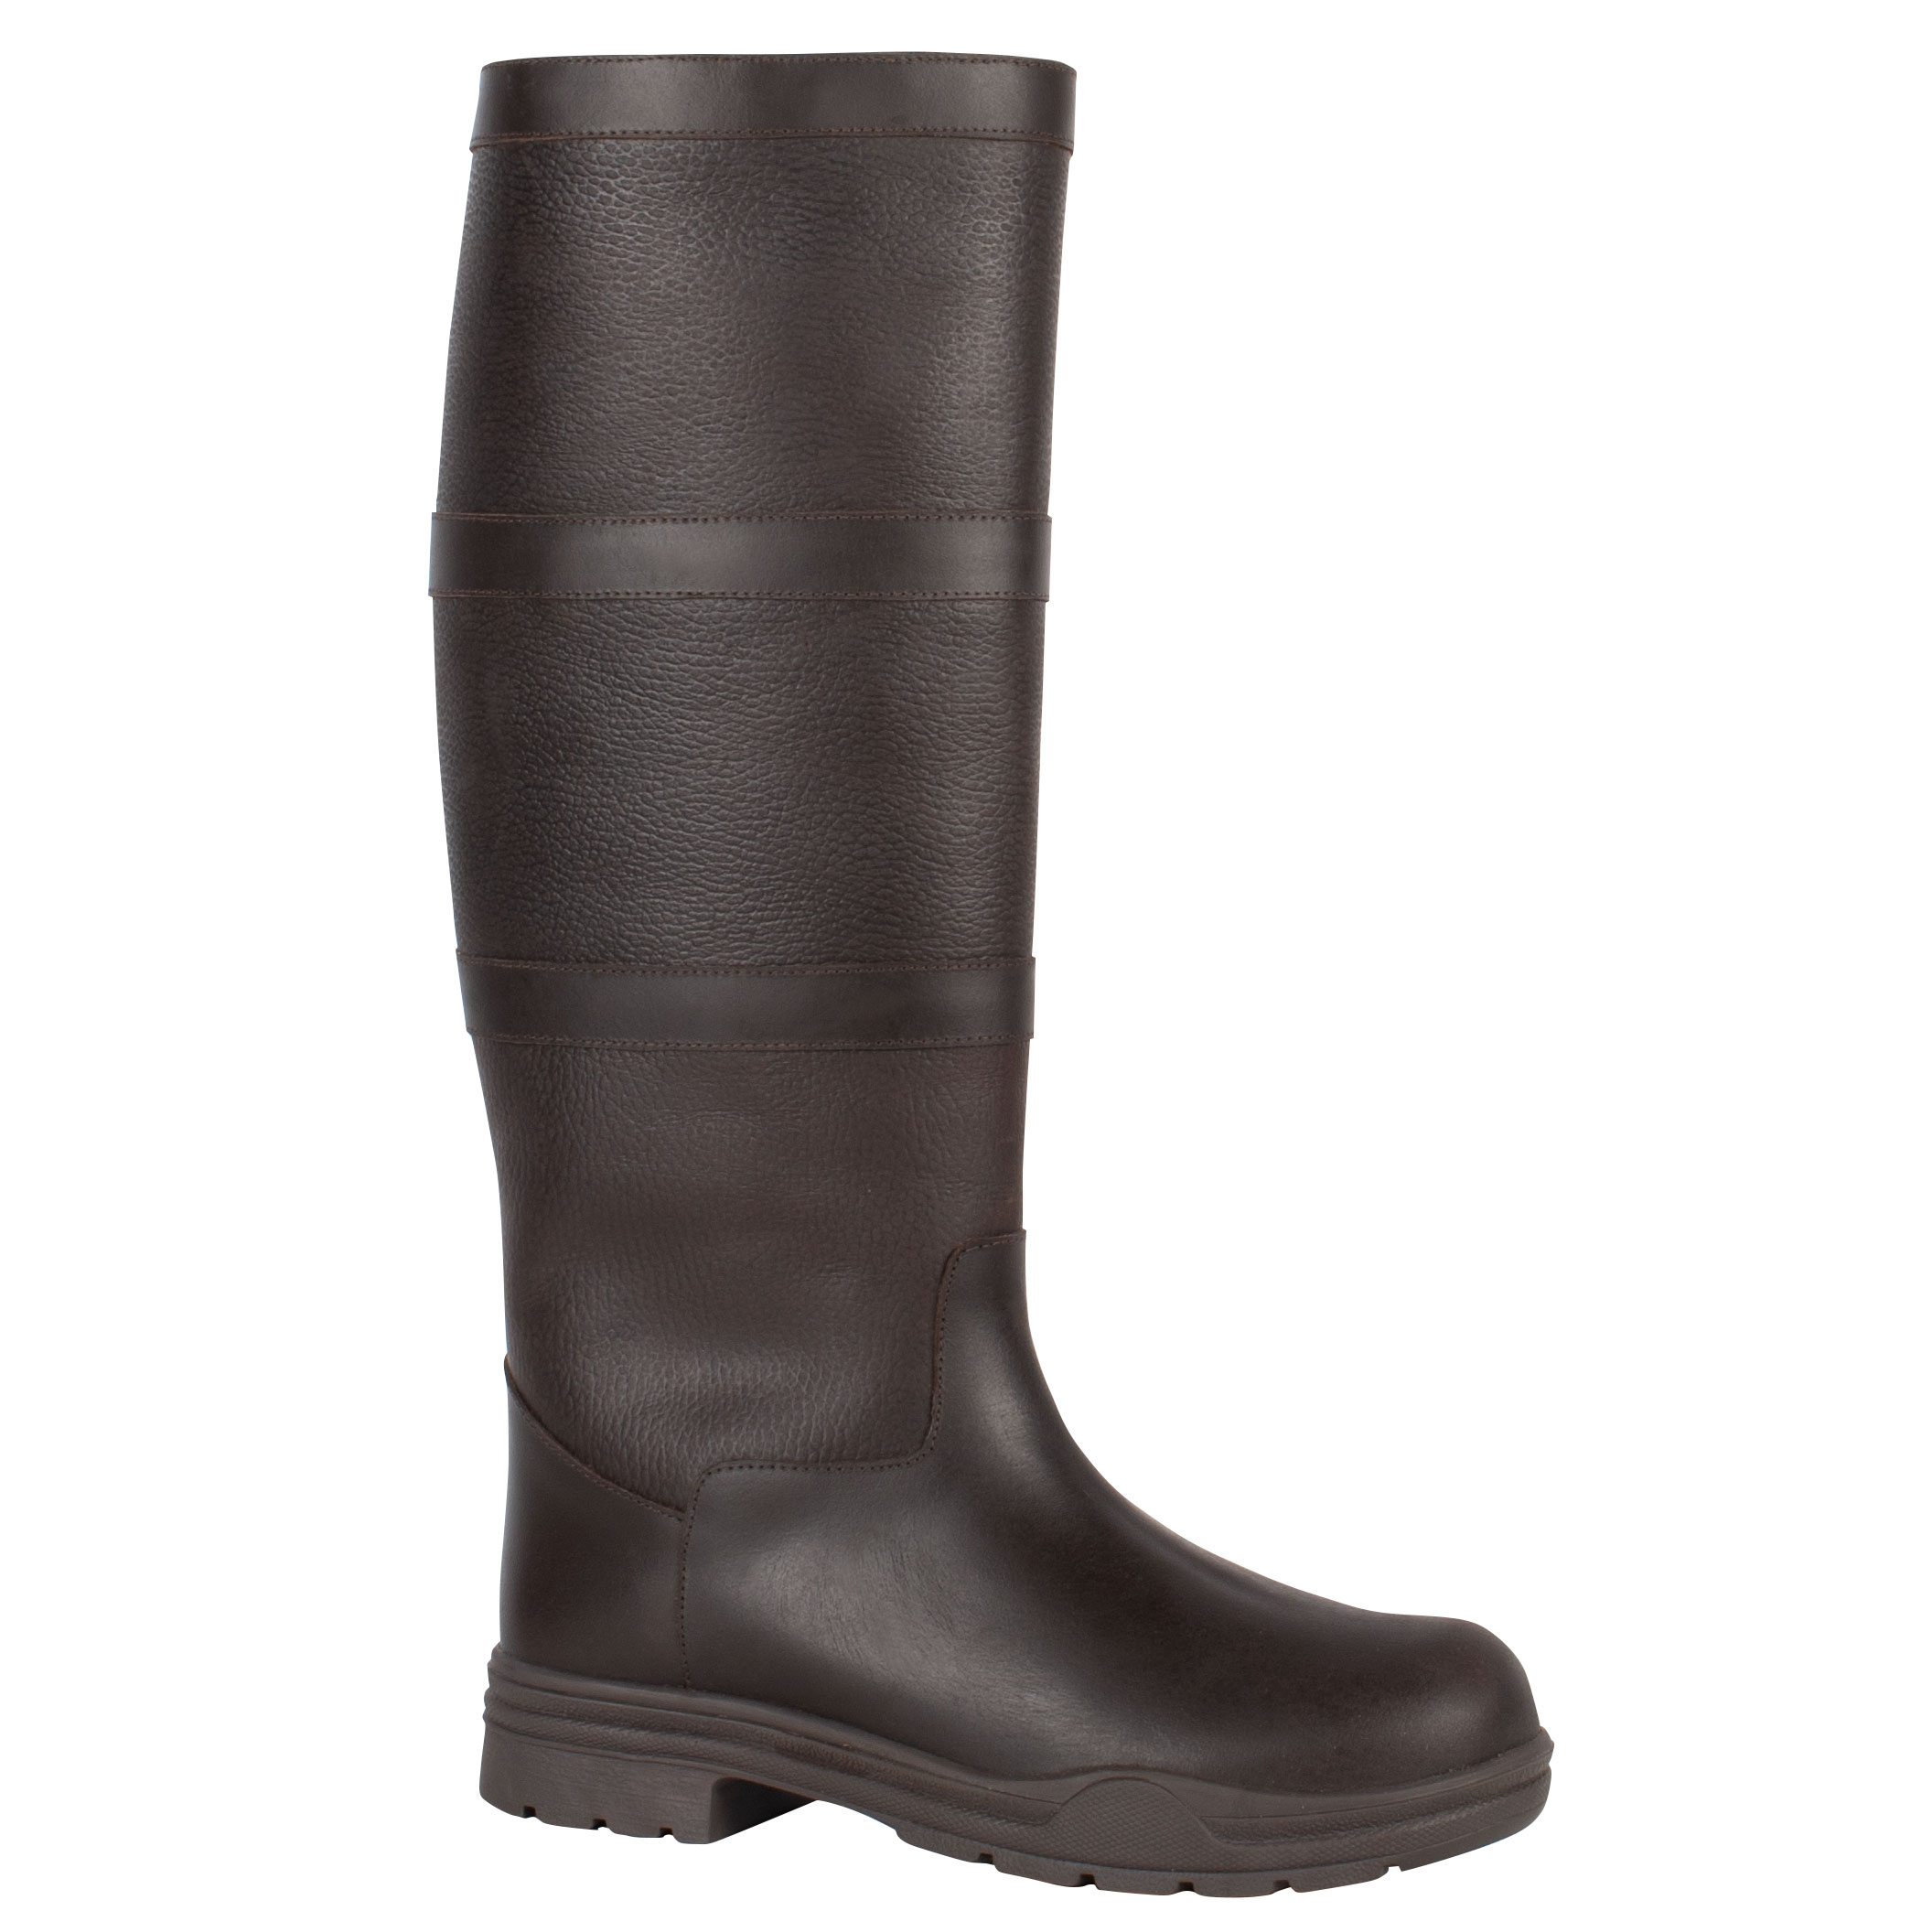 Mondoni Country Boots donkerbruin maat:36